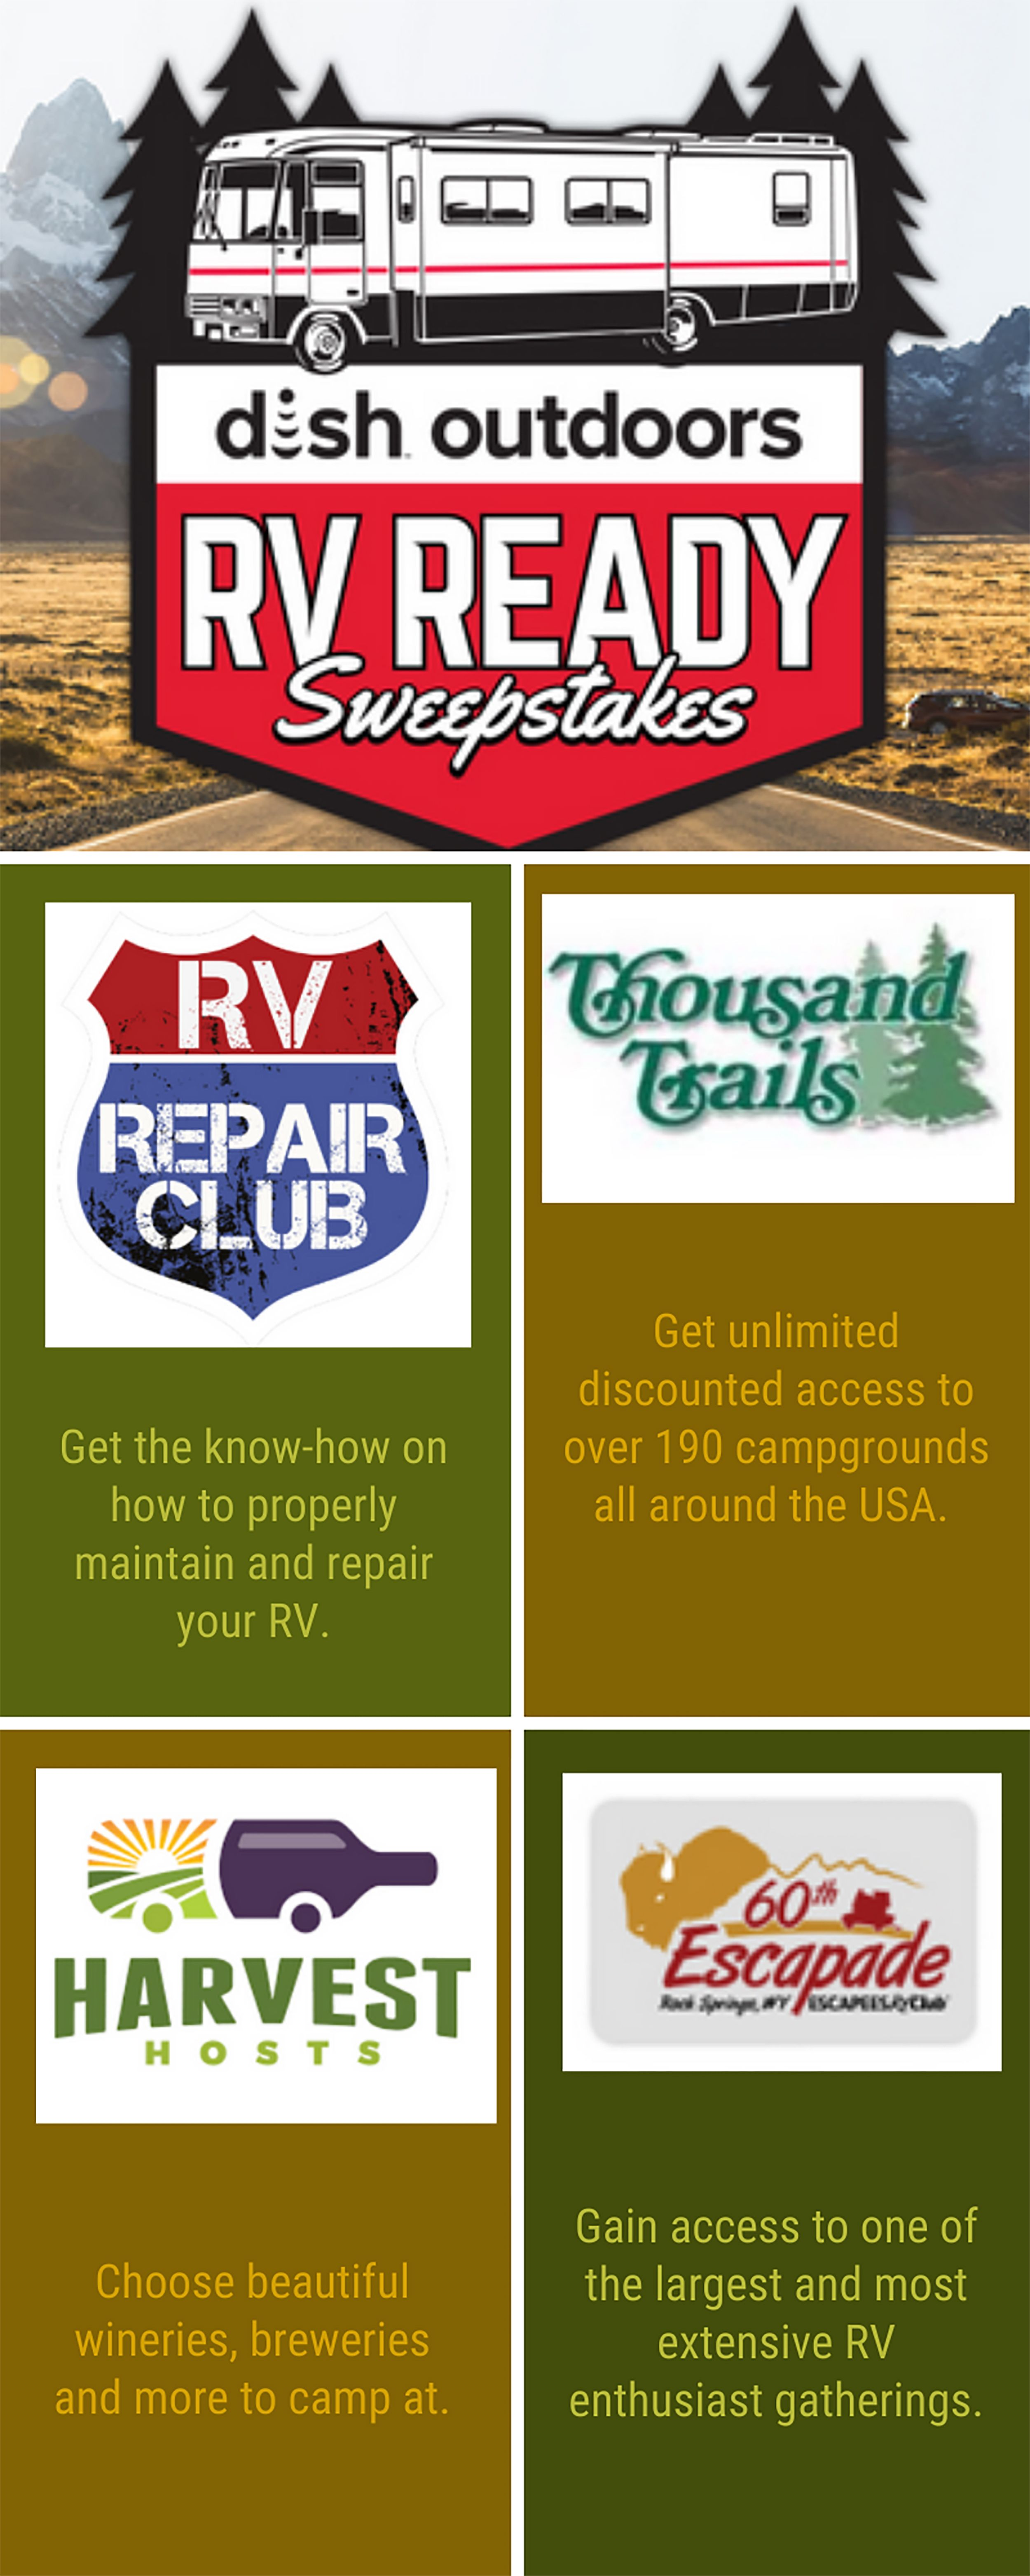 Do you know where to start looking for your next adventure? Finding the right resources and memberships can be time consuming. But, these are a great place to start. Want them for free? Enter our RV Ready Sweepstakes now! #RV #Sweepstakes #Summer #Camping #Glamping #DIY #Adventure #RVReady